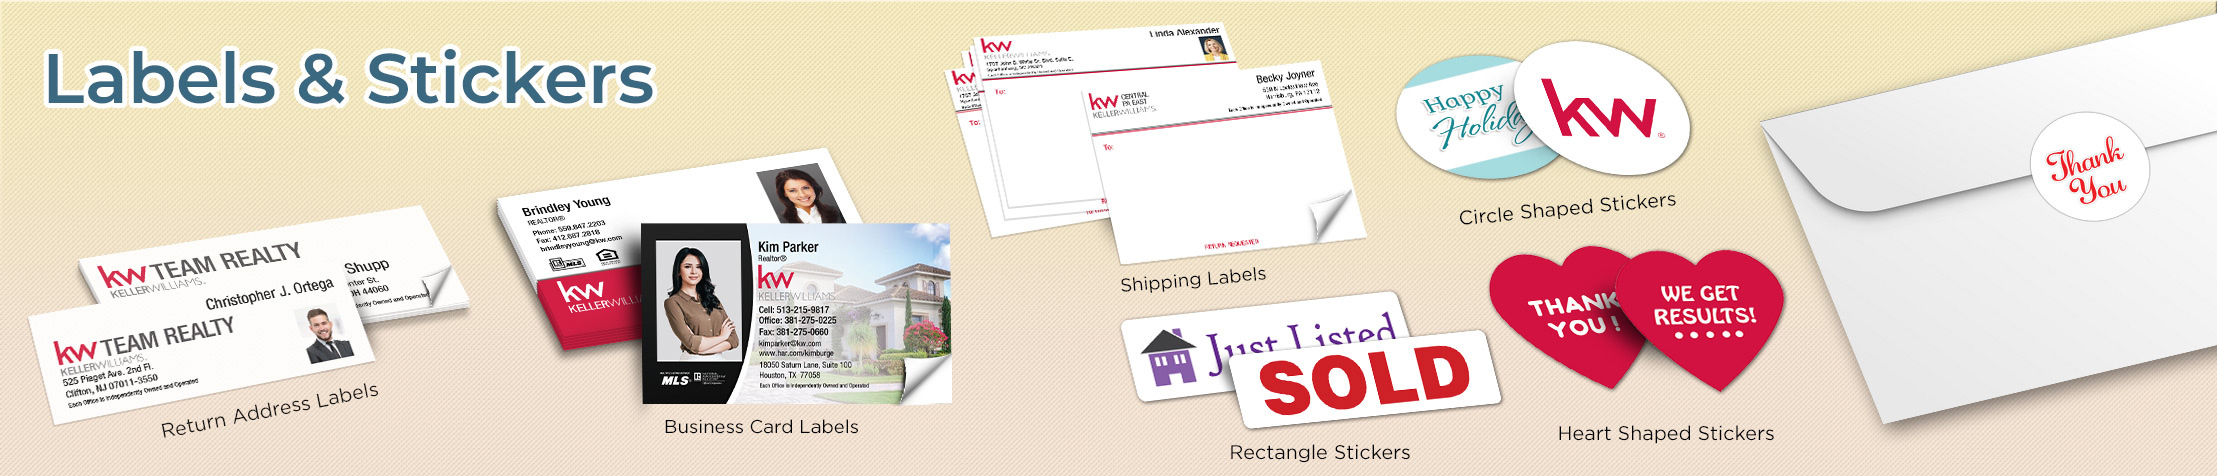 Keller Williams Real Estate Labels and Stickers - KW approved vendor business card labels, return address labels, shipping labels, and assorted stickers | BestPrintBuy.com